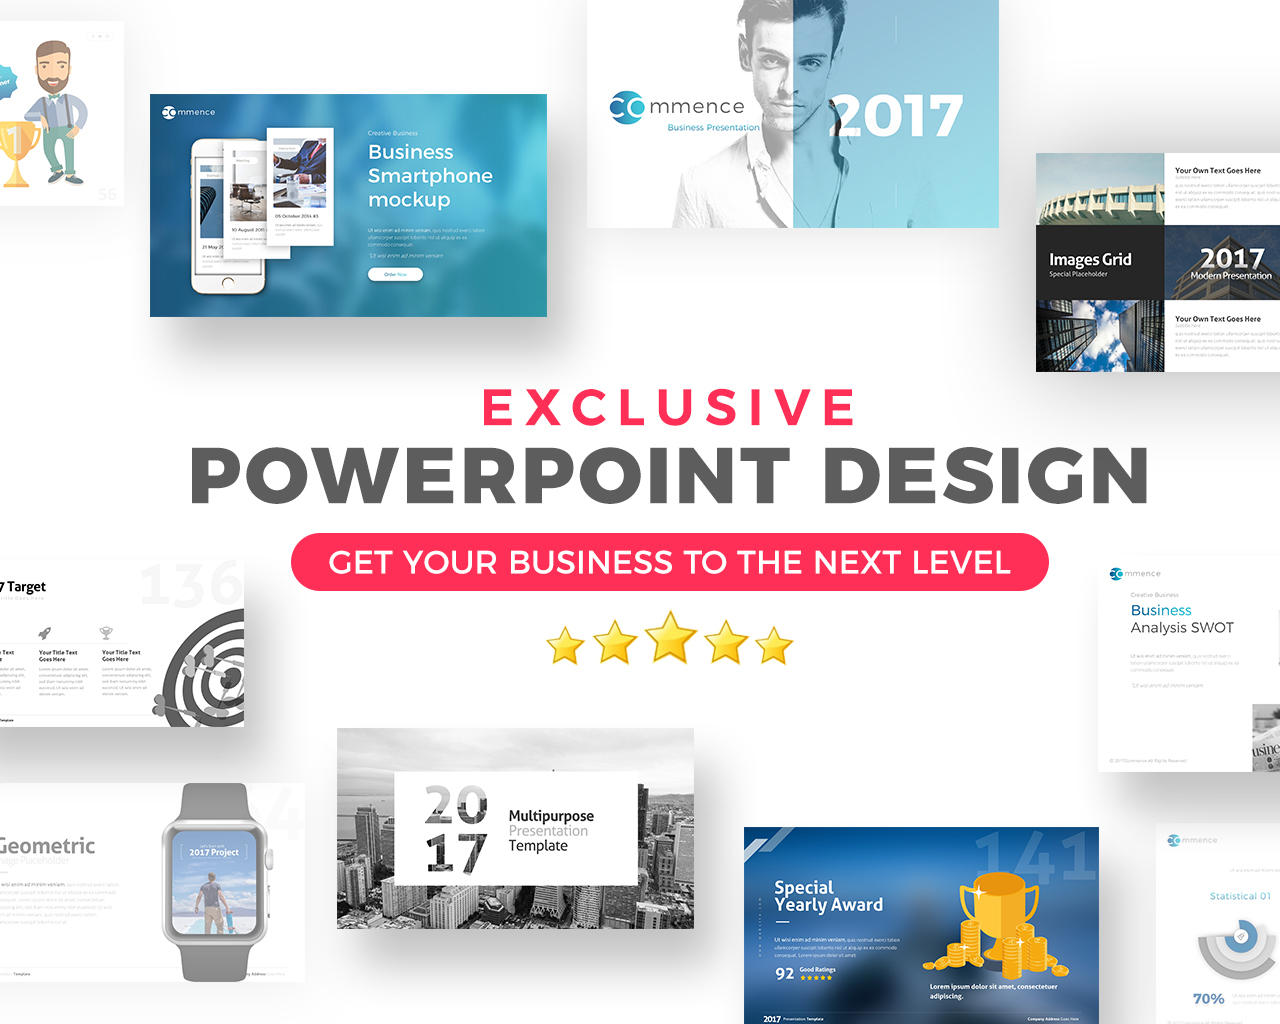 Professional Powerpoint Presentation Design by BrandEarth - 109428